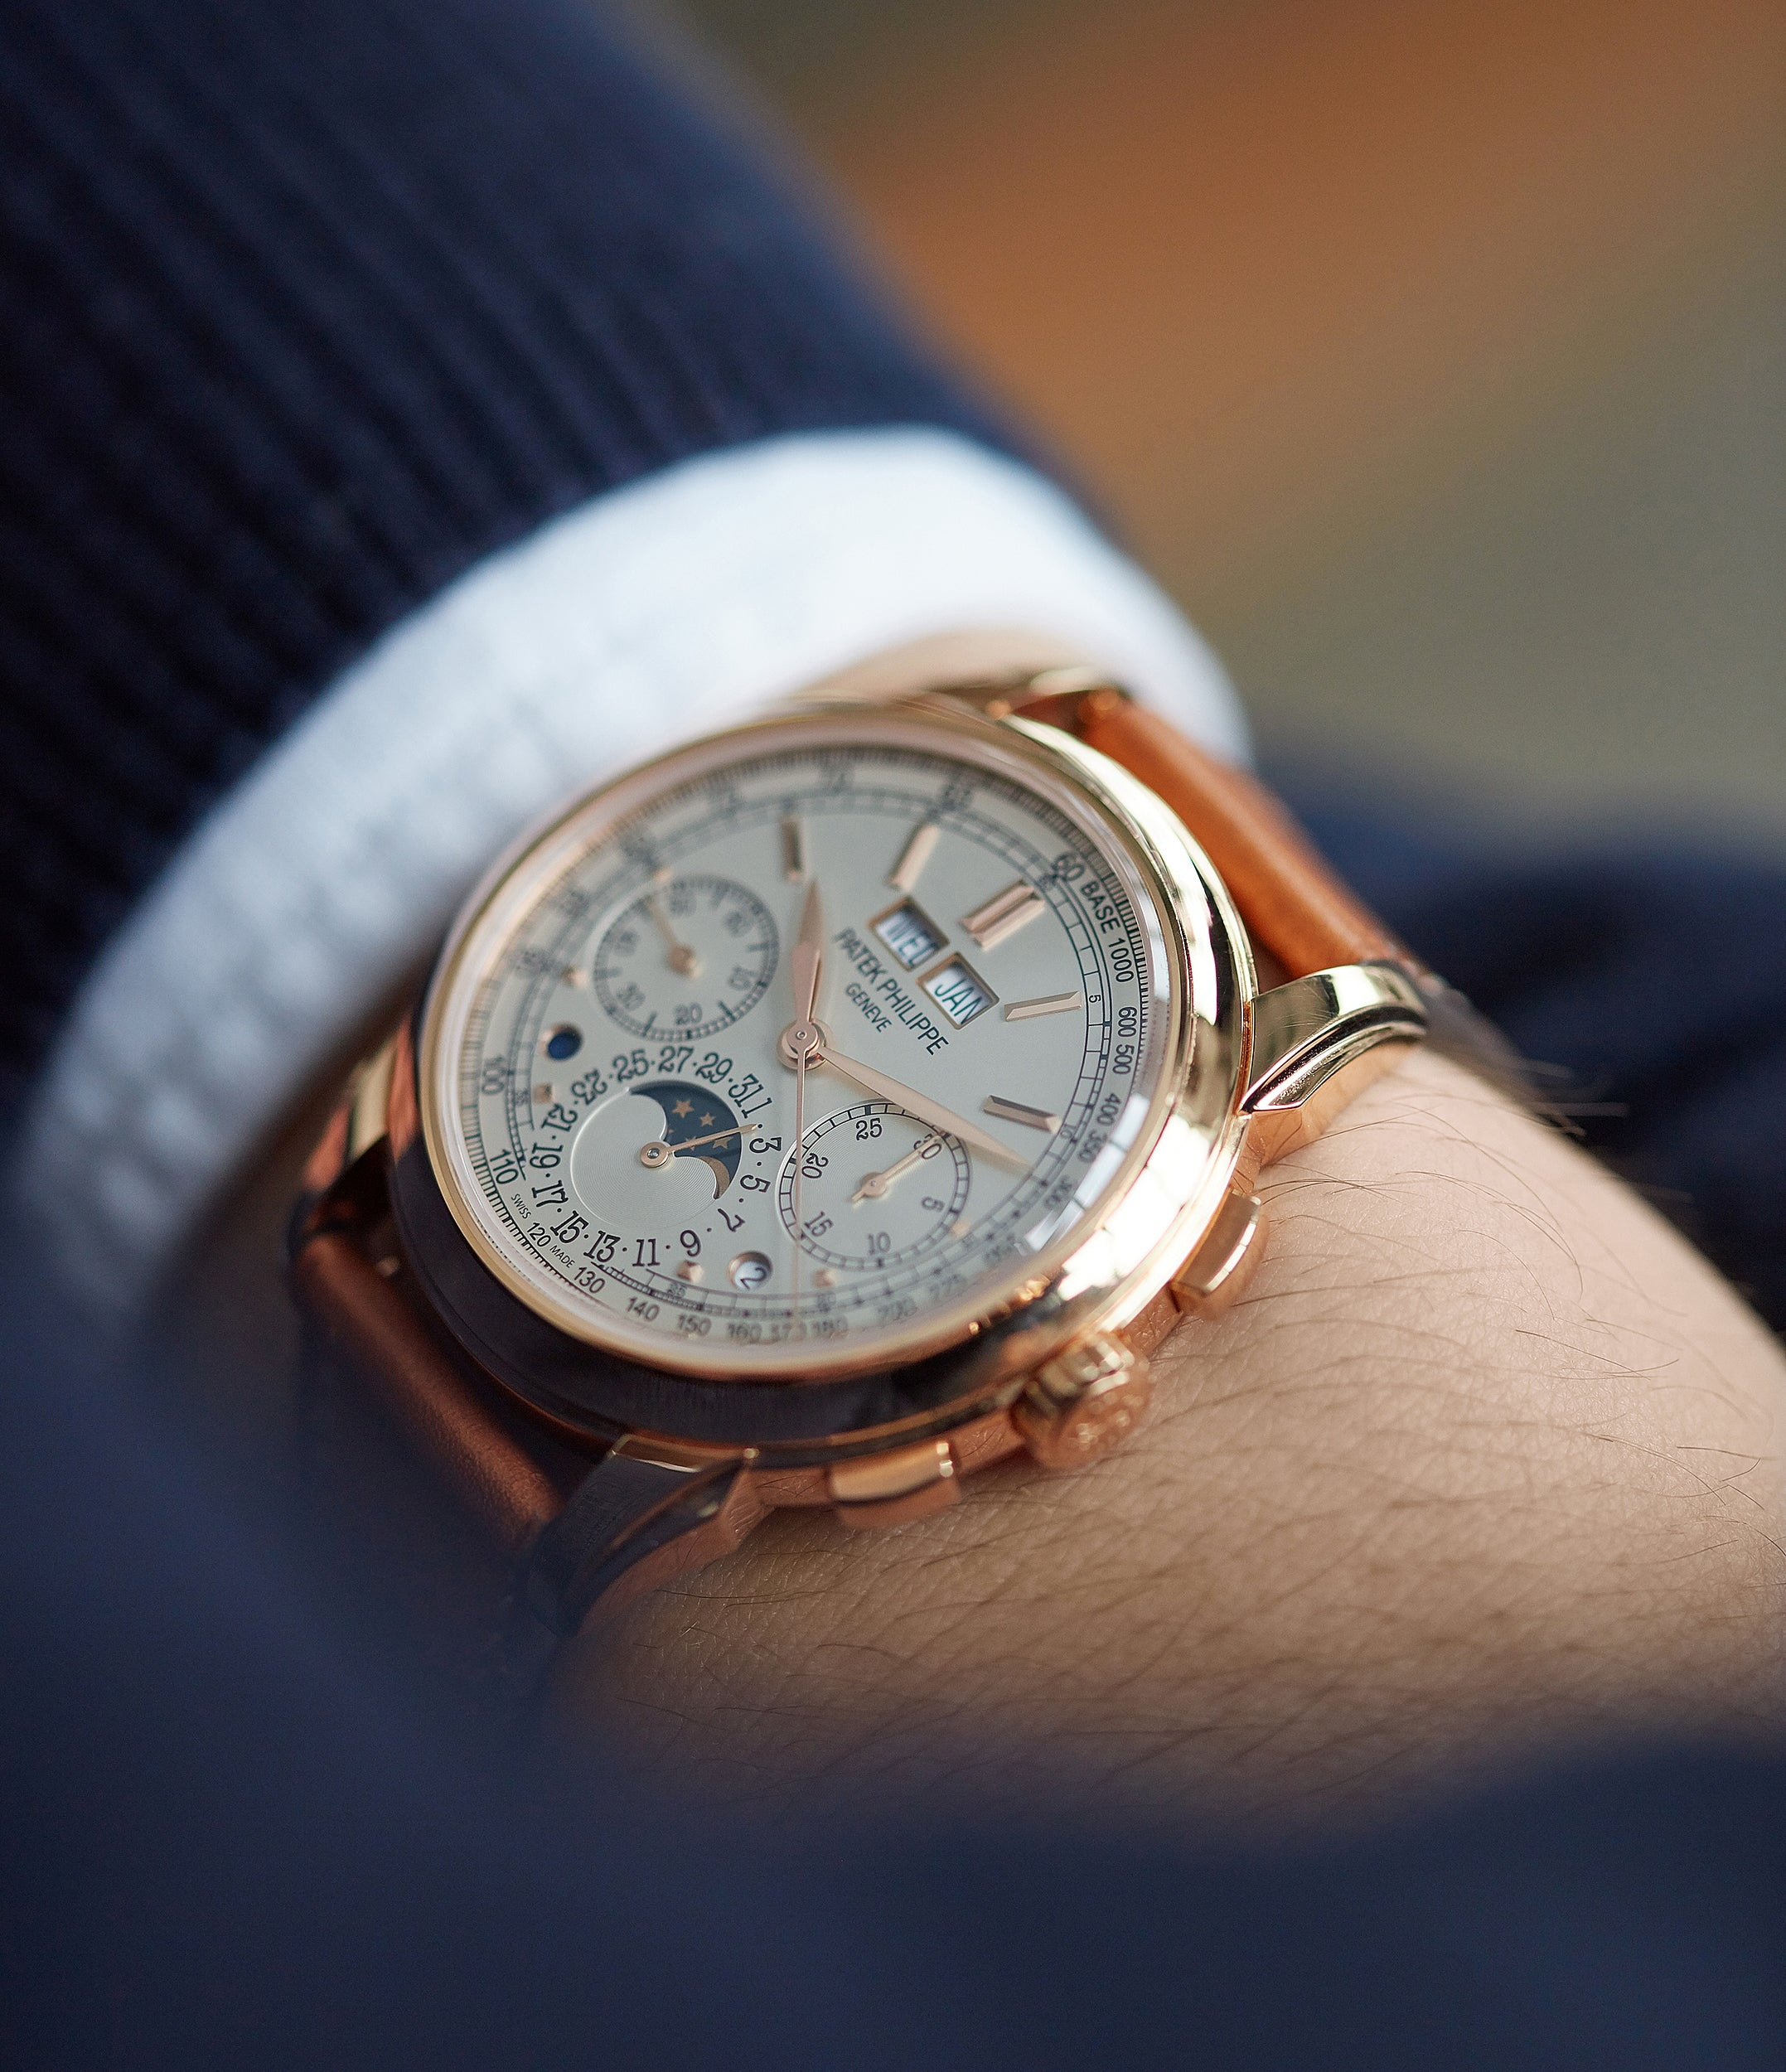 pre-owned Patek Philippe 5270R Grand Complications Perpetual Calendar Chronograph rose gold dress watch for sale online at A Collected Man London UK specialist of rare watches